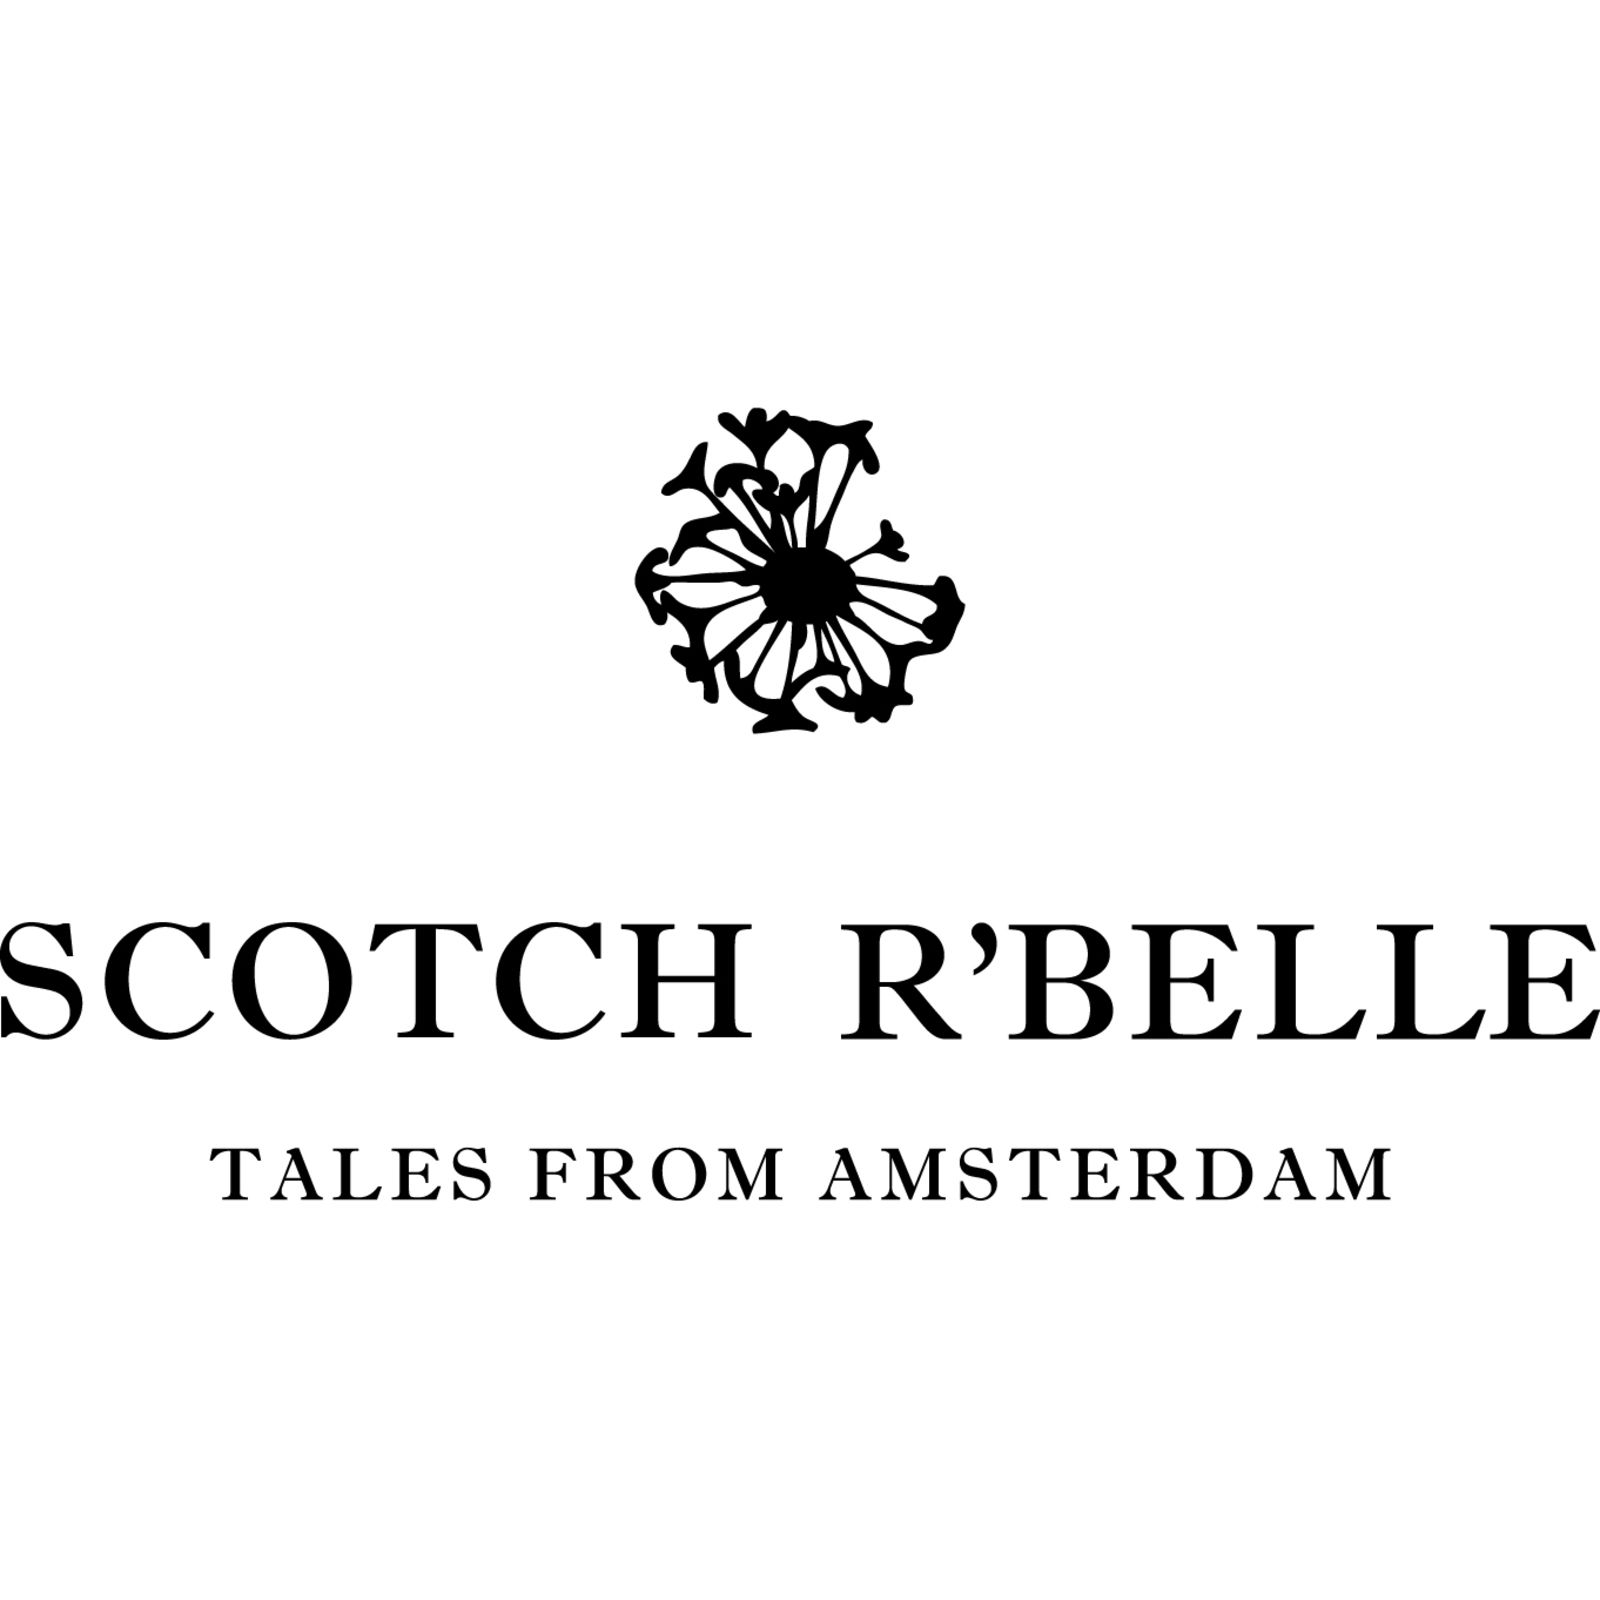 SCOTCH R'BELLE (Bild 1)